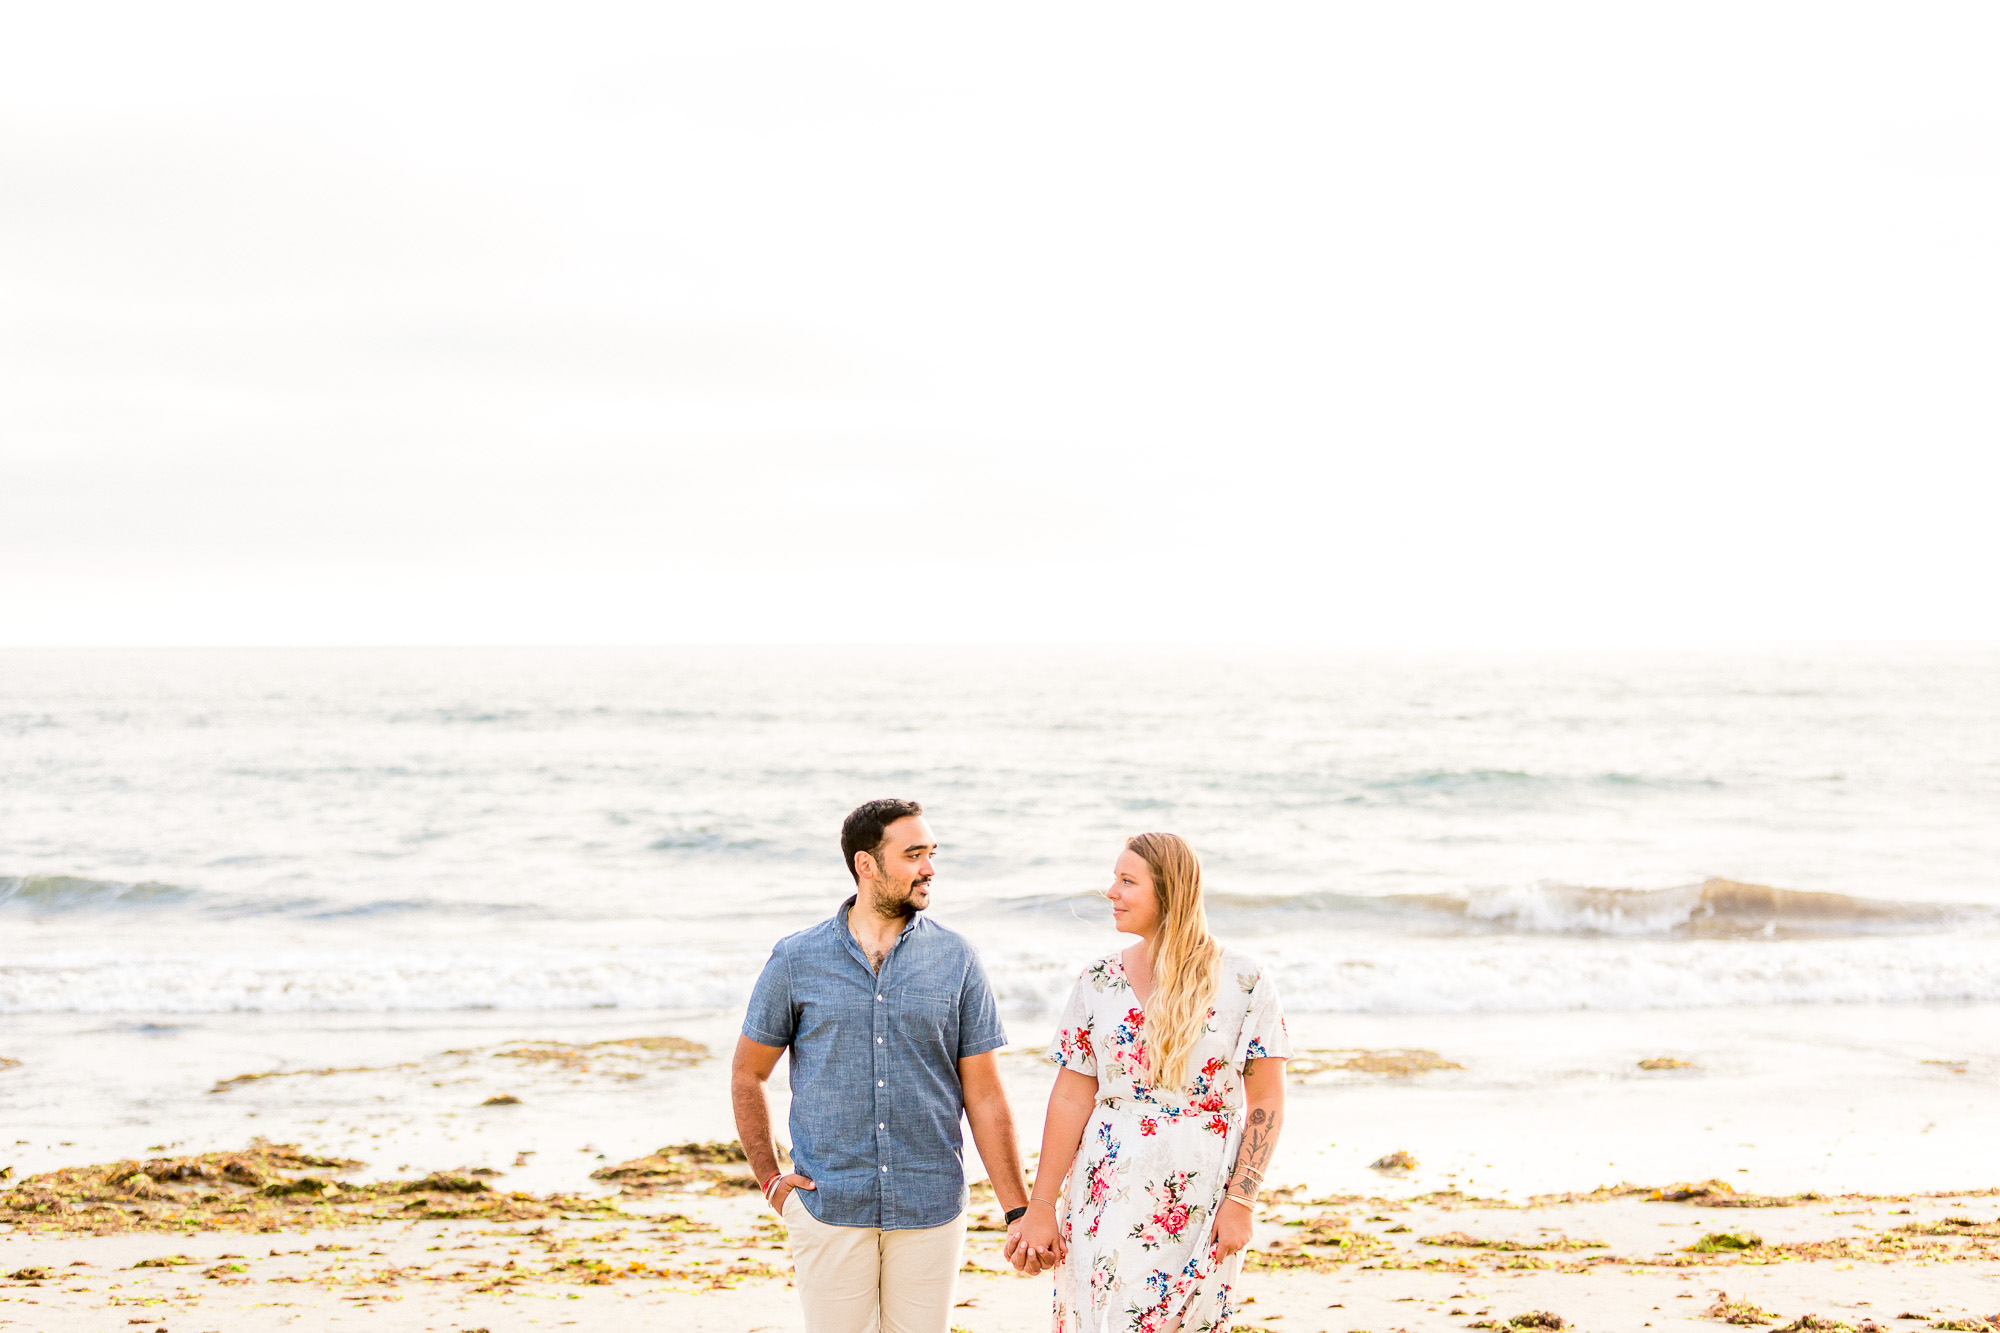 Justine_Puneet_Cardiff_Engagement_Session_131.jpg